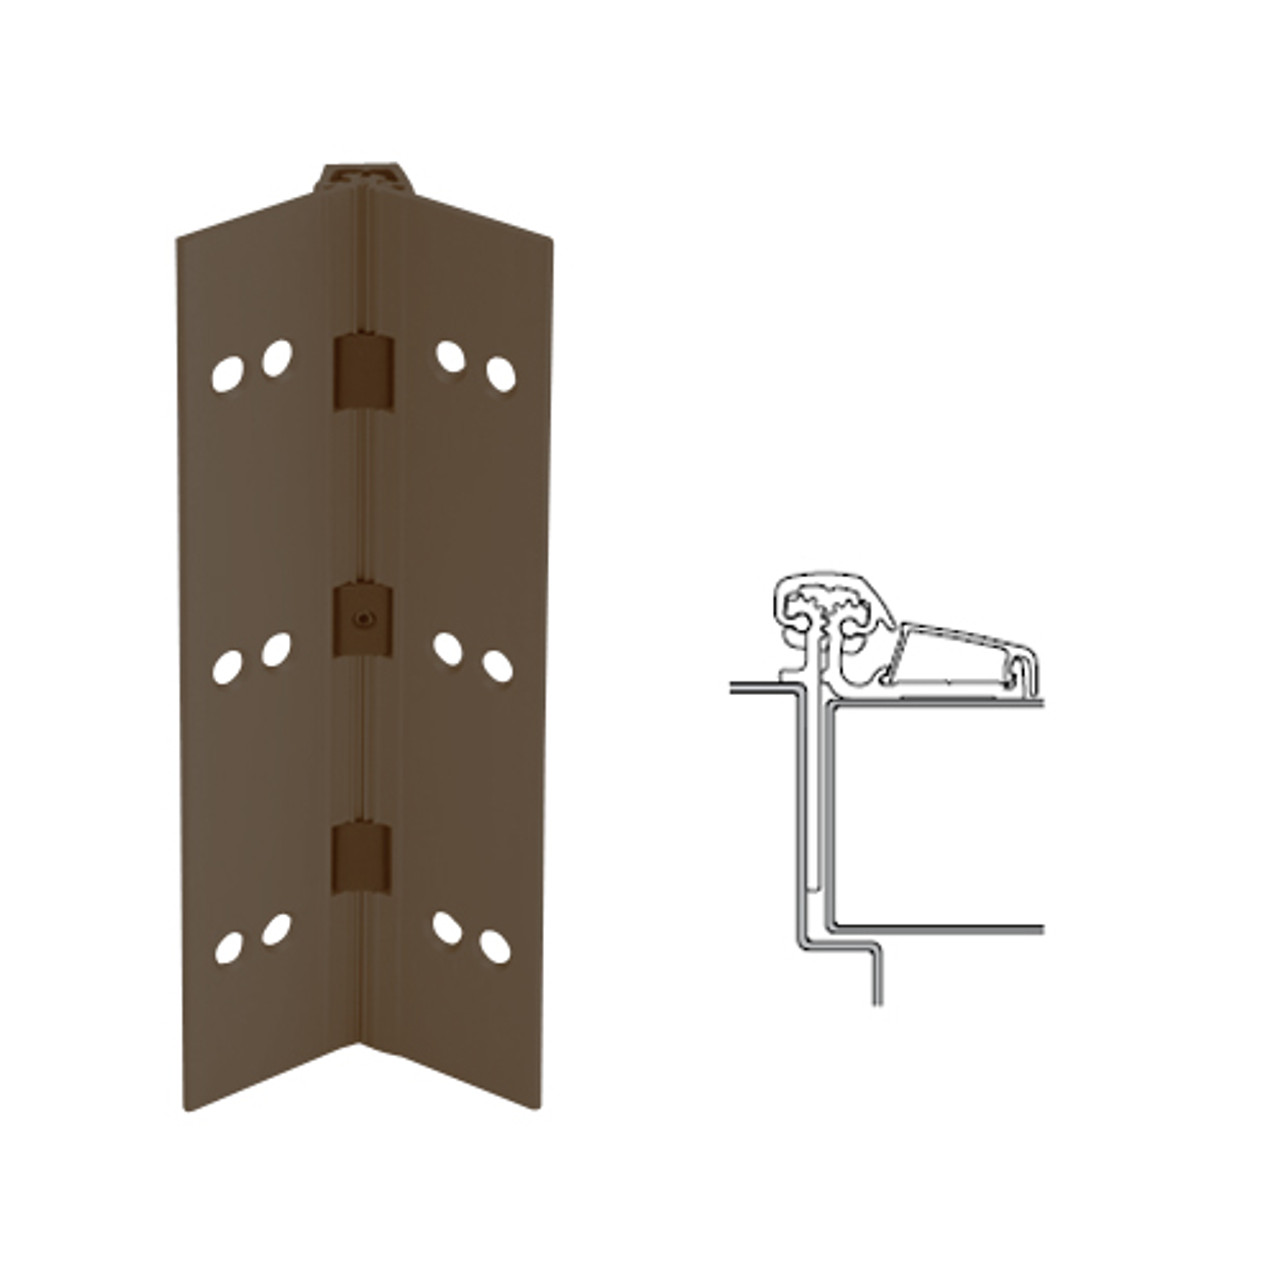 053XY-313AN-120-SECHM IVES Adjustable Half Surface Continuous Geared Hinges with Security Screws - Hex Pin Drive in Dark Bronze Anodized